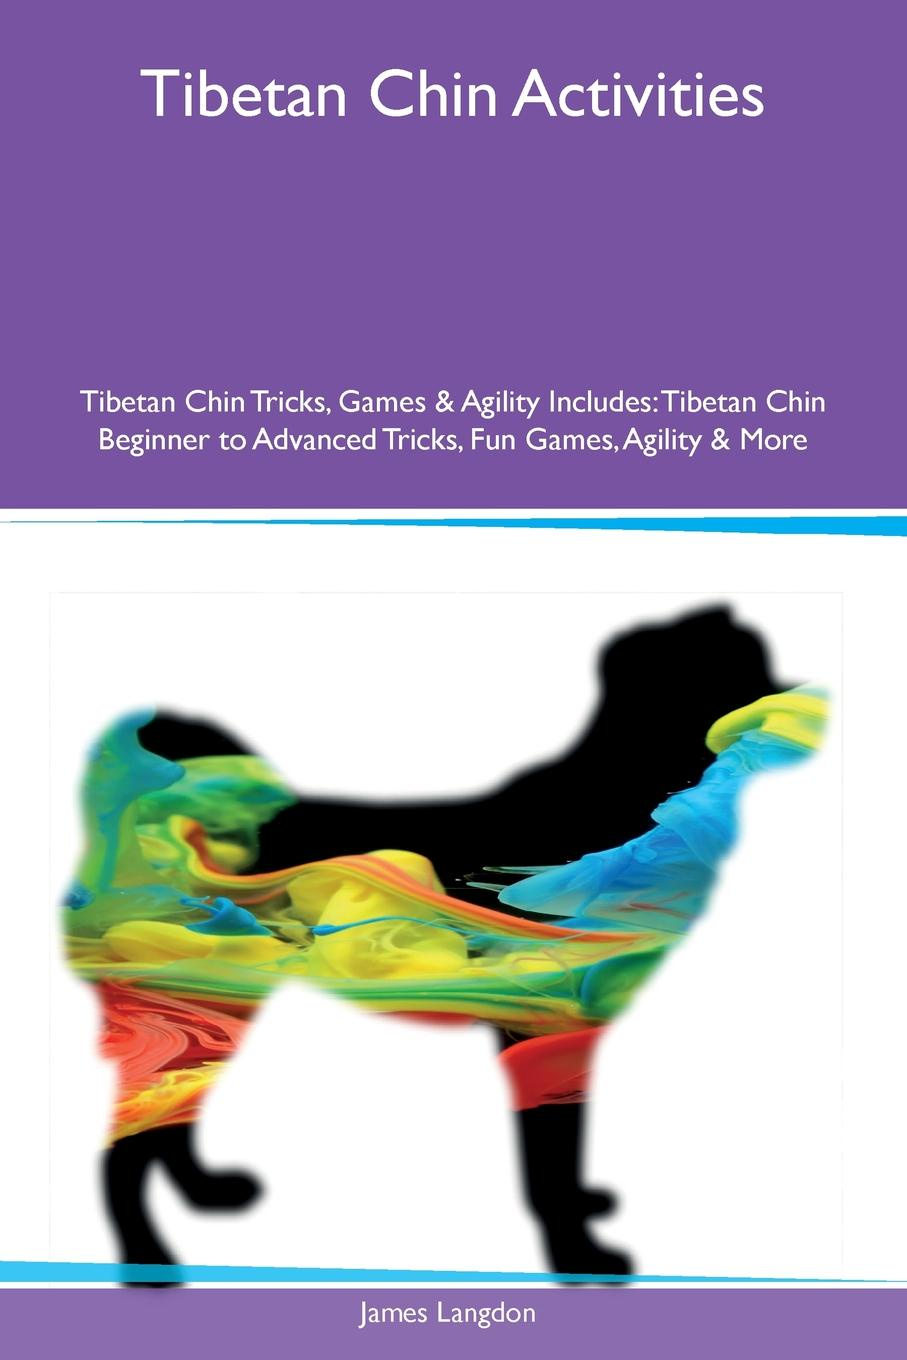 James Langdon Tibetan Chin Activities Tricks, Games & Agility Includes. Beginner to Advanced Fun Games, More